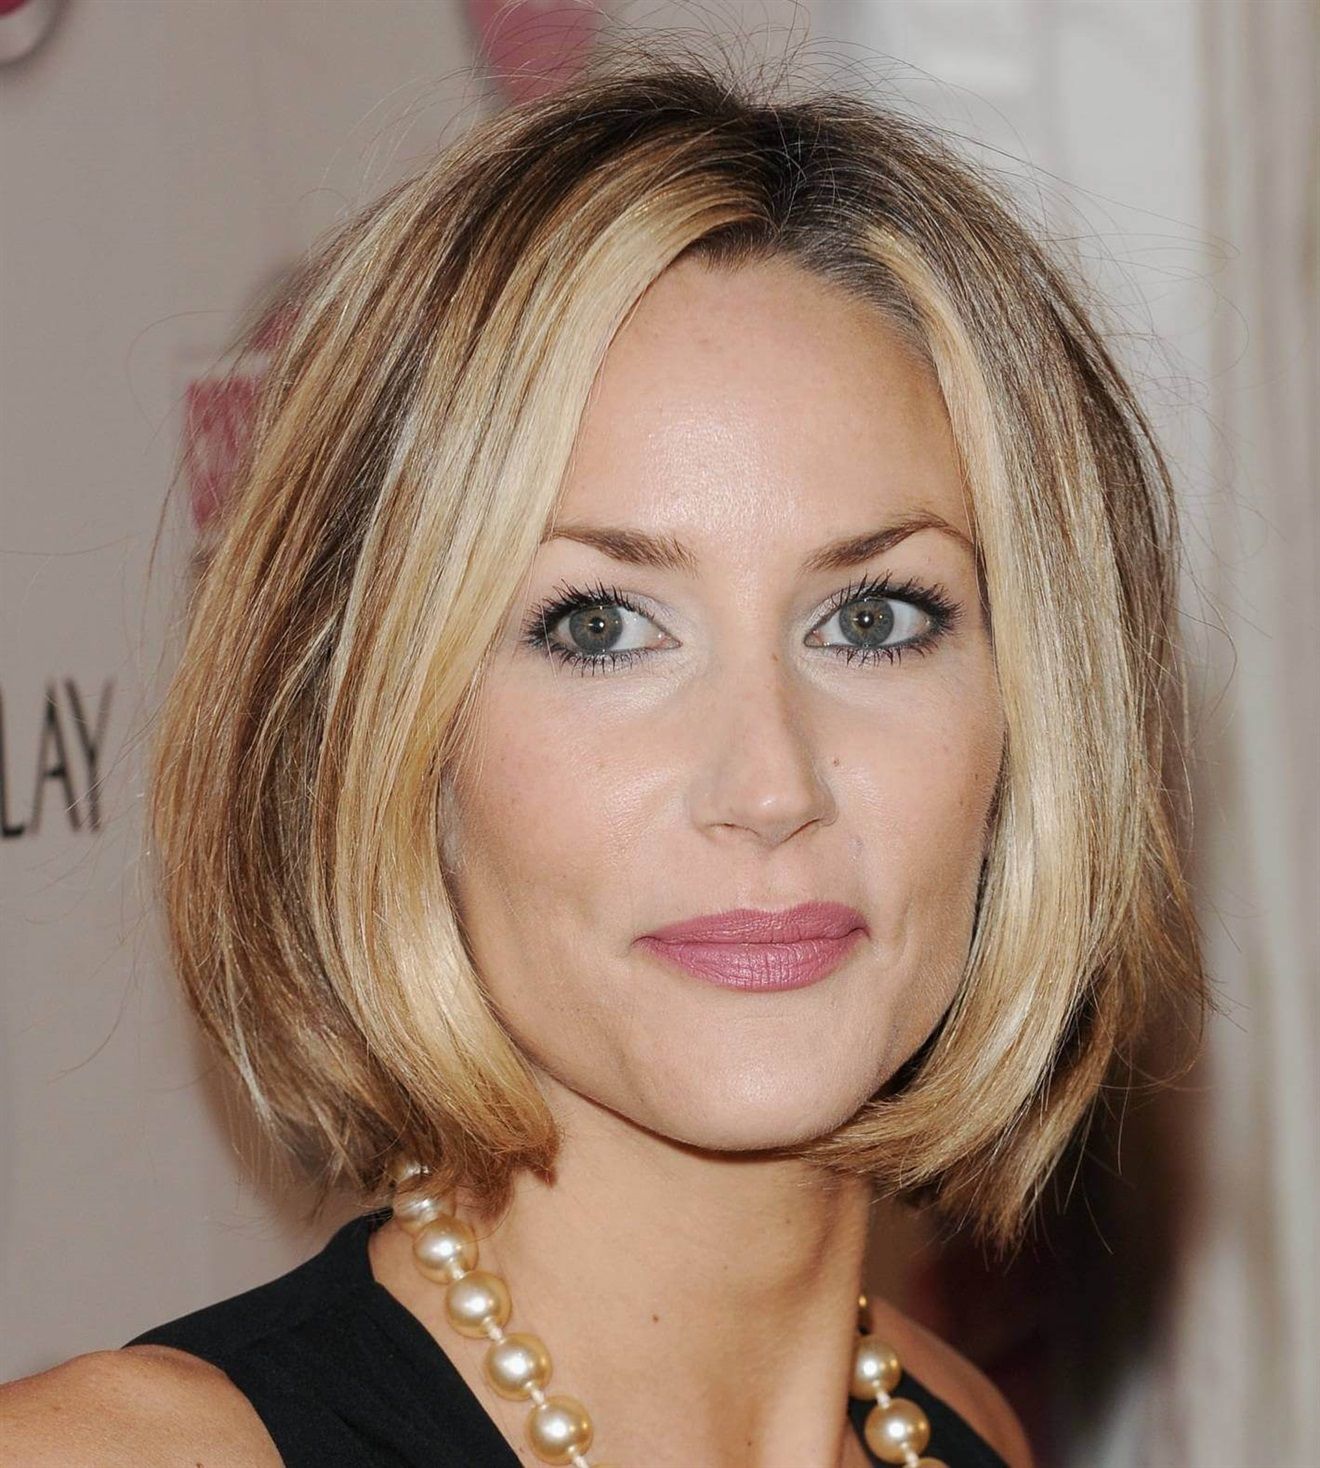 Bob Hair Ideas for Over 40 Love yourself with this haircut, which is also very popular for women in their 40s. It's not your age that matters. Your self-confidence will make the other party forget your age.